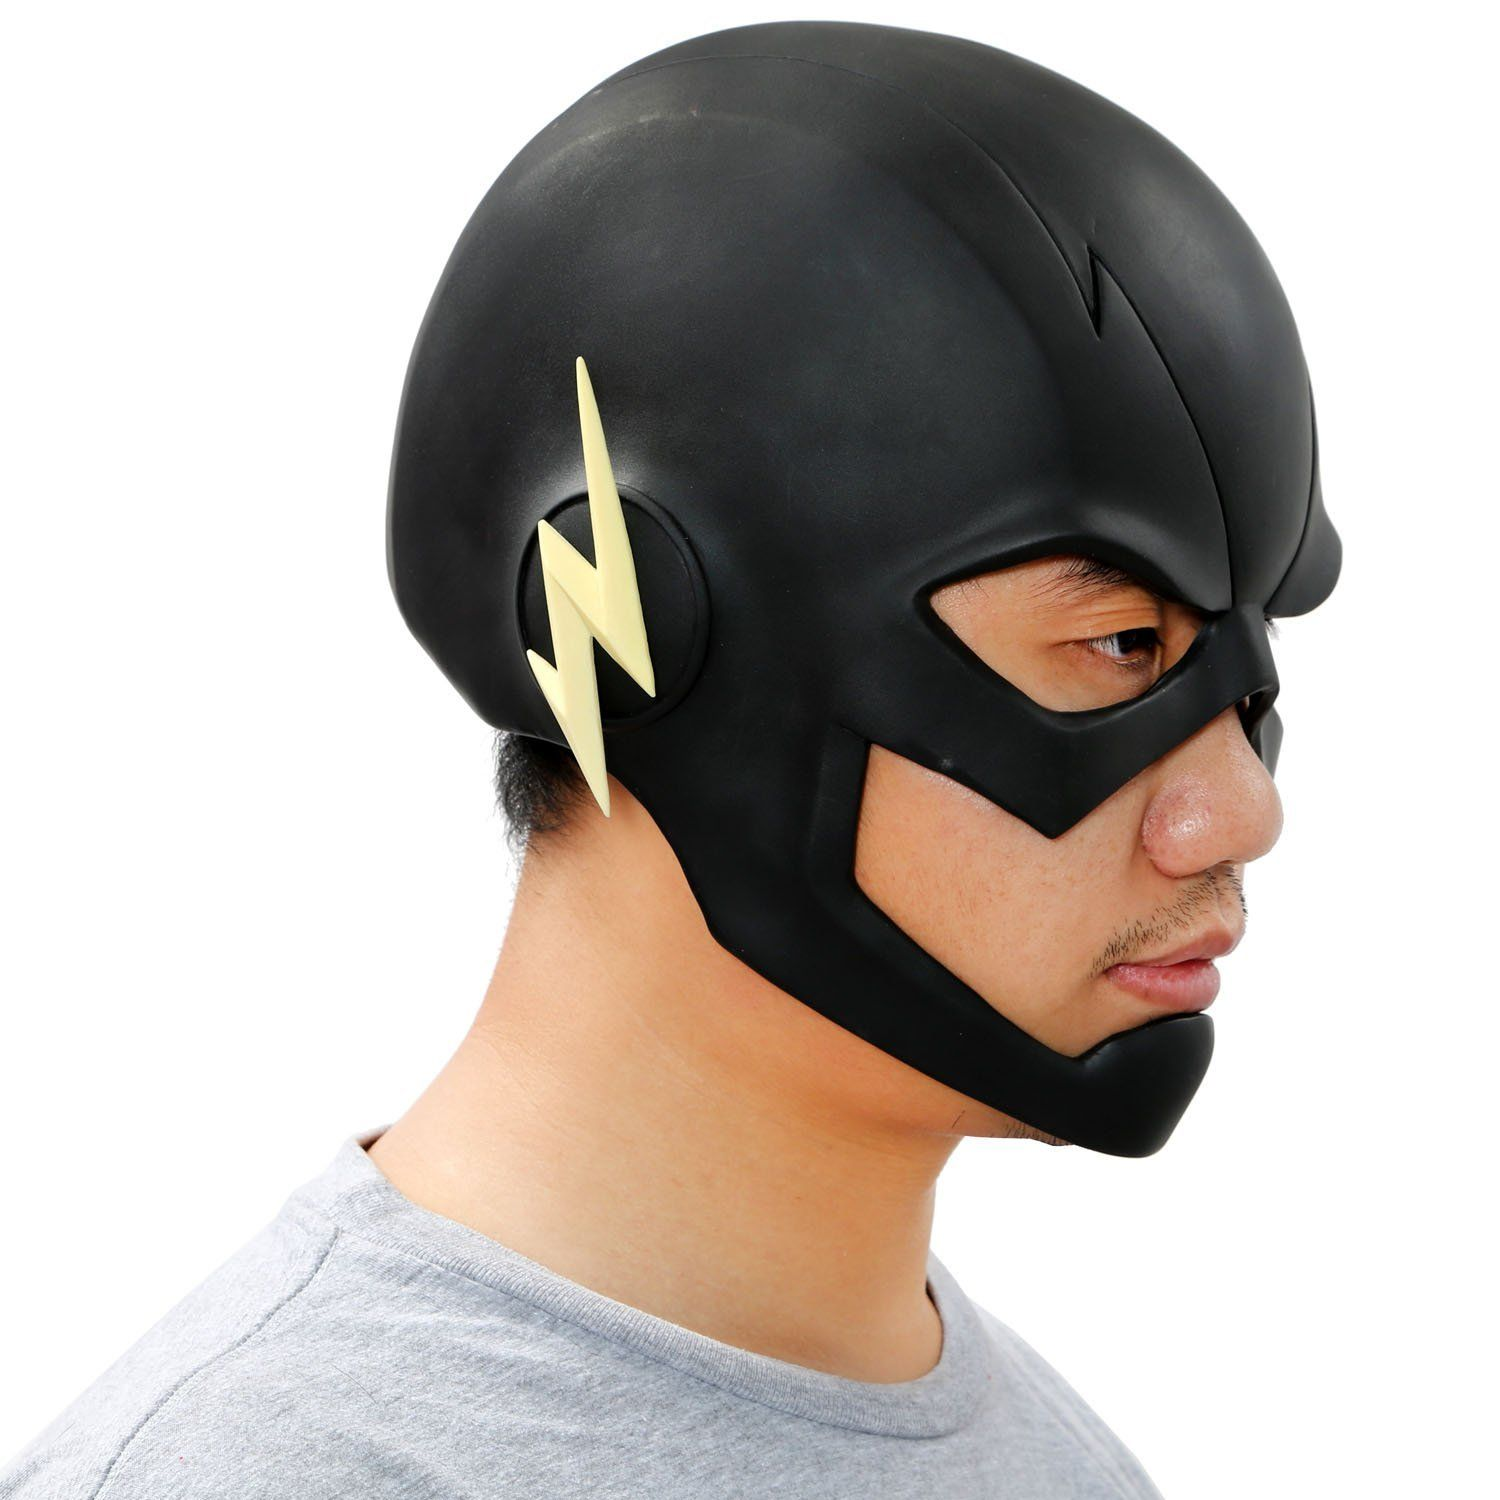 Reverse Flash Mask Cosplay Streak PVC Helmet Adult The Halloween ...